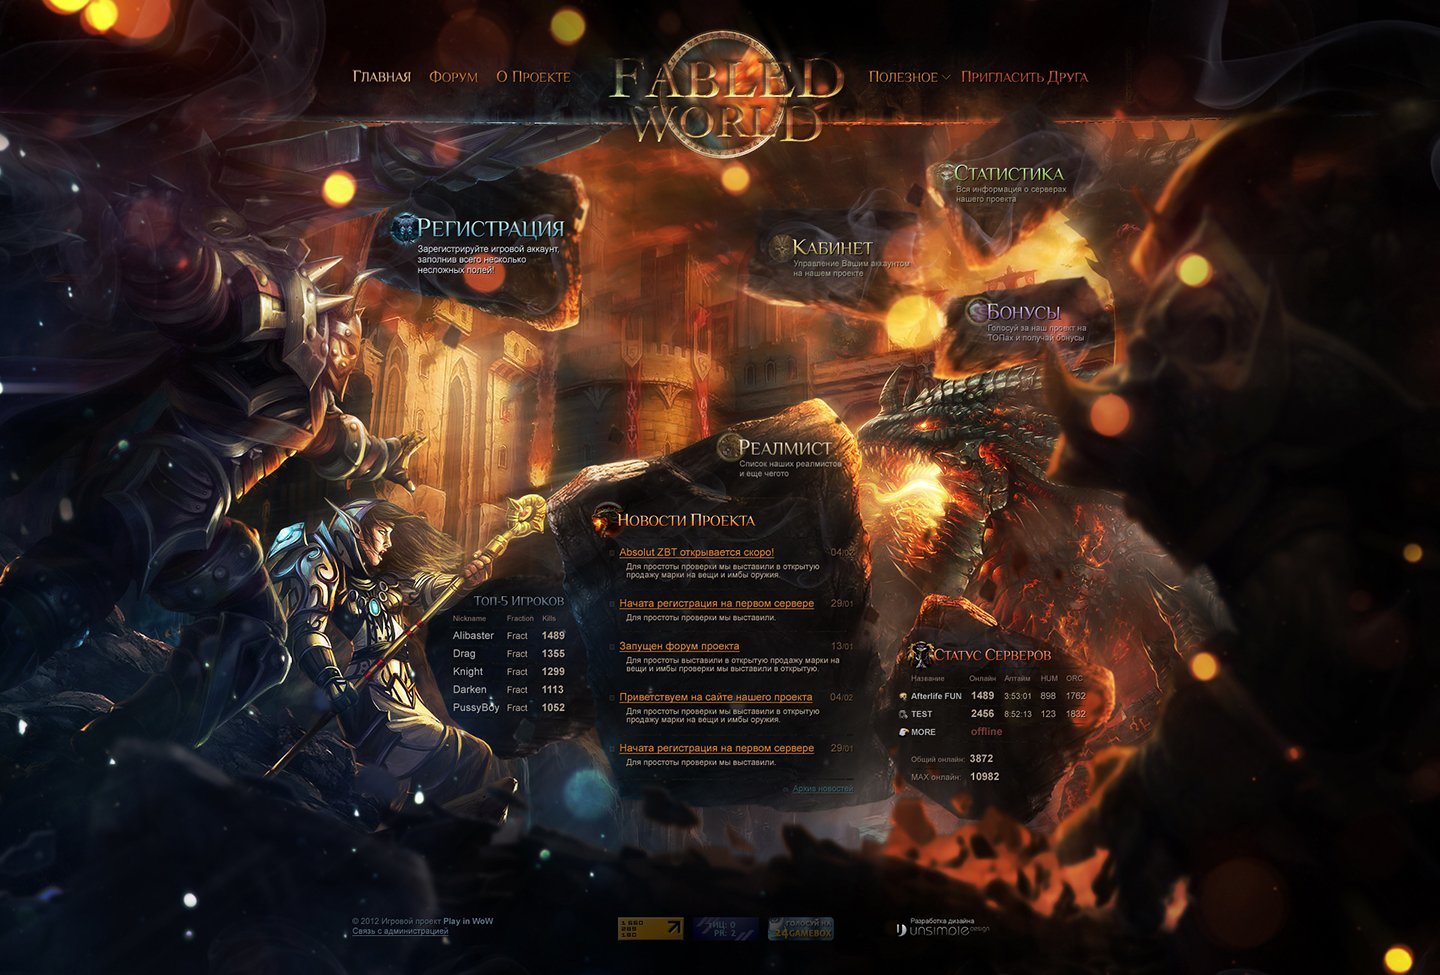 FabledWorld > Website design for private server World of Warcraft. Main page